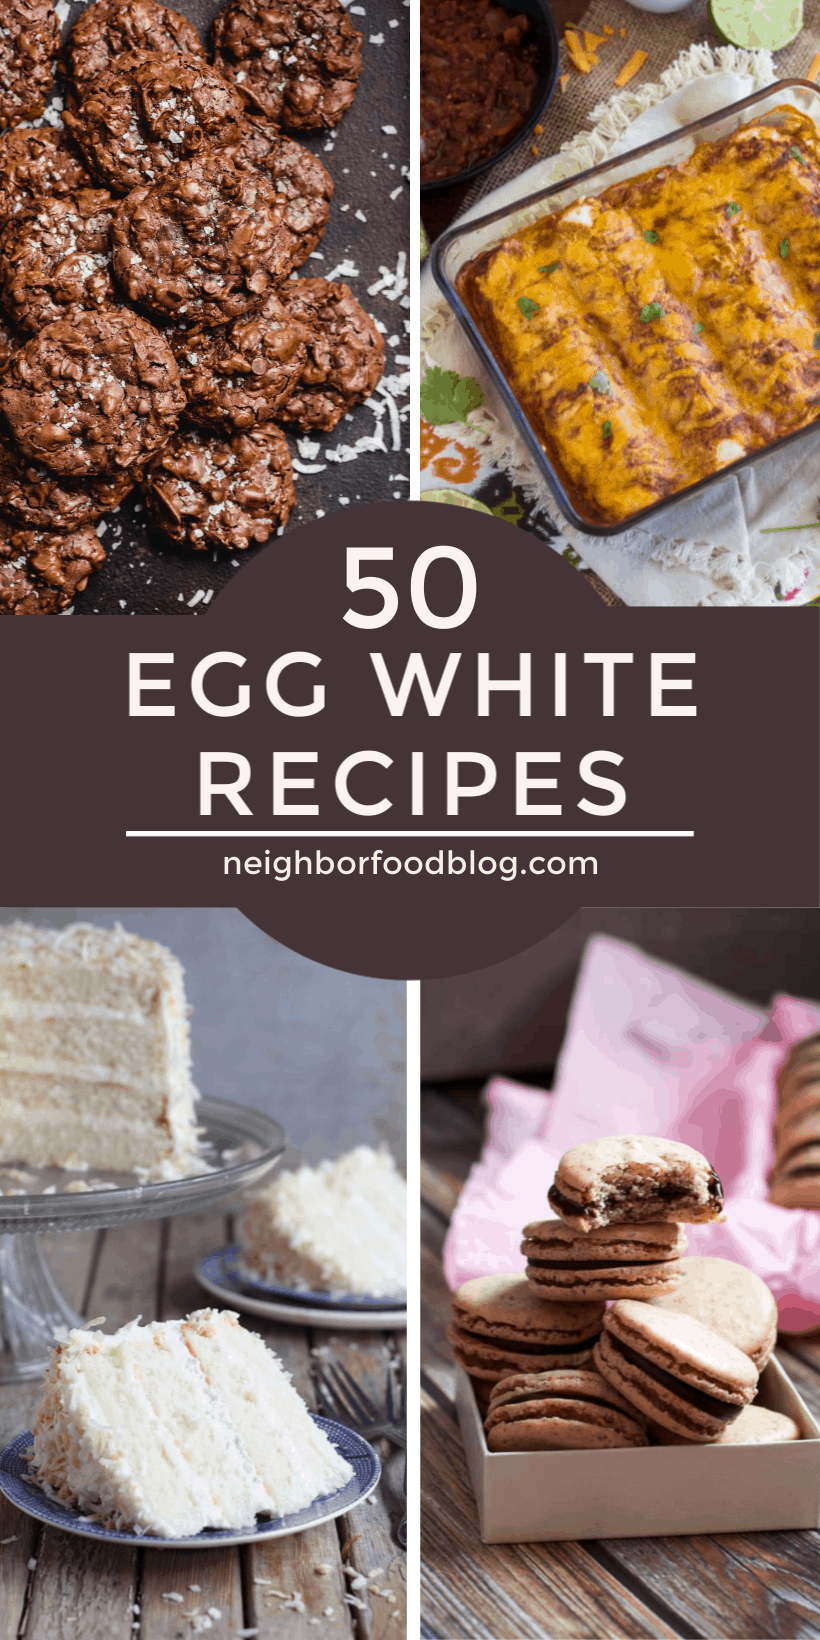 Four images of recipes using egg whites in a collage